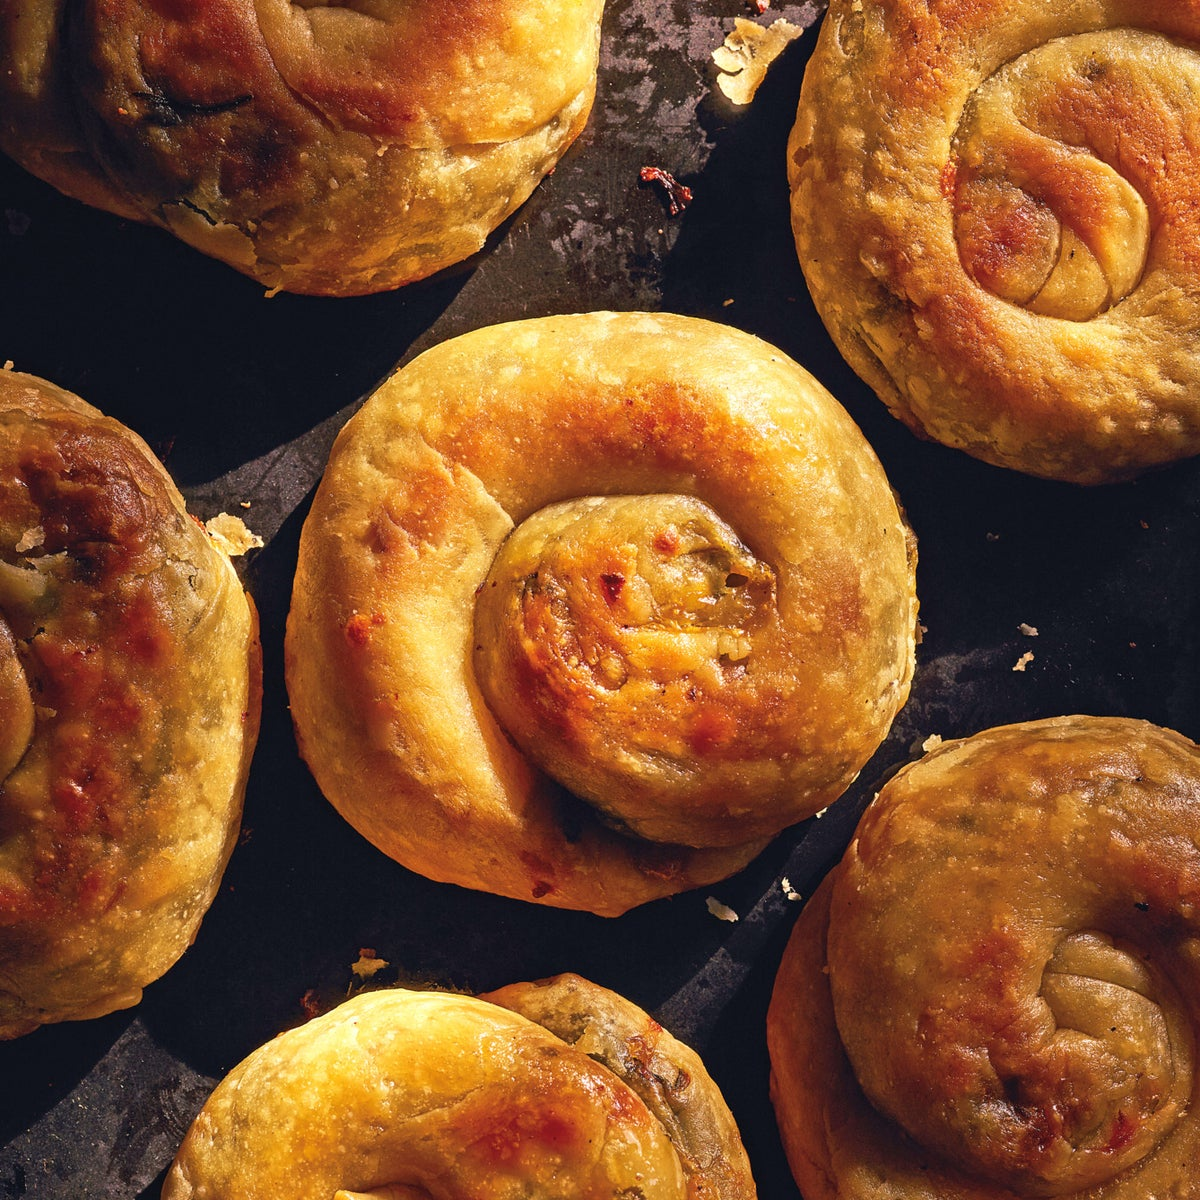 Boyoz. There's no one who was born or lives in Izmir who isn't familiar with the treat – but not everyone knows that its name comes from Ladino.